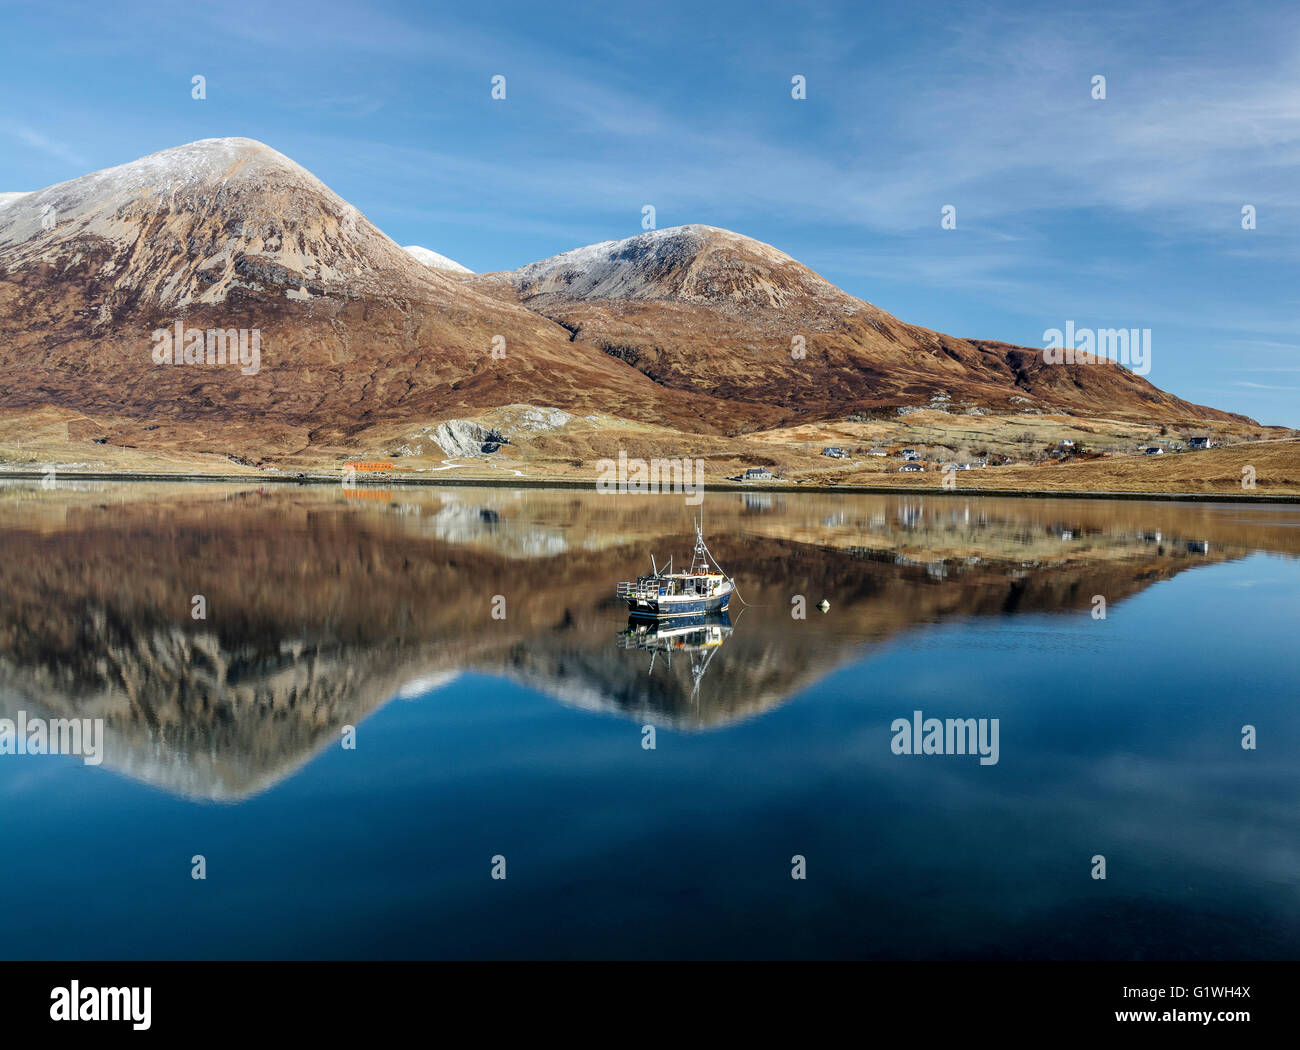 winter mountains at torrin with reflections and mooring boat on loch slapin - Stock Image